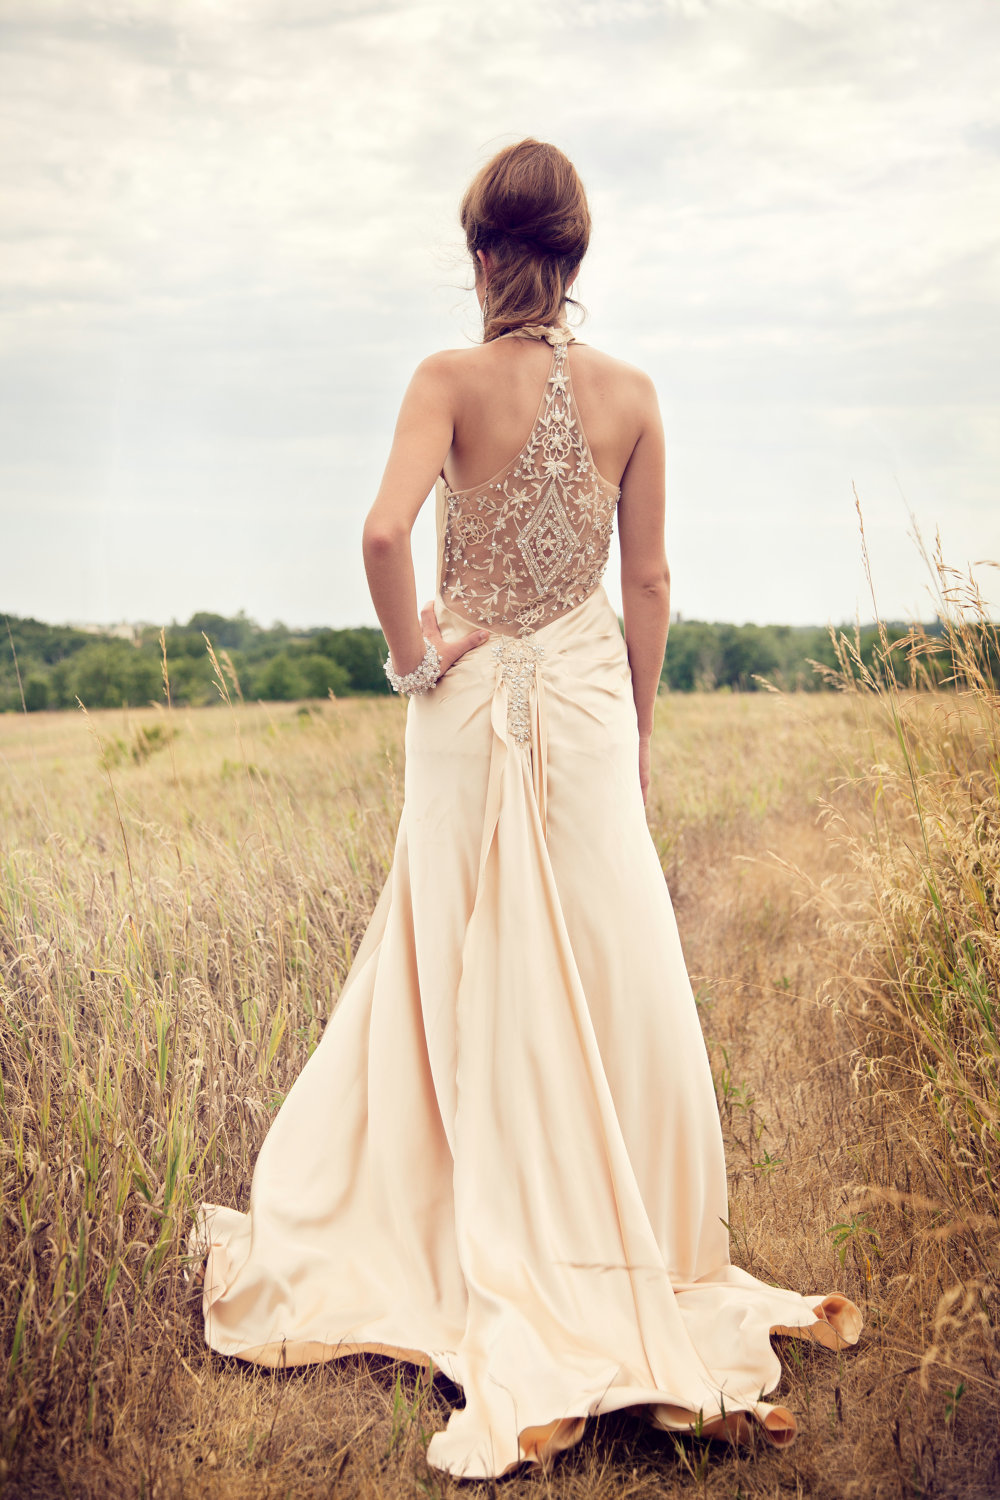 wedding dress bridal style inspiration from etsy.